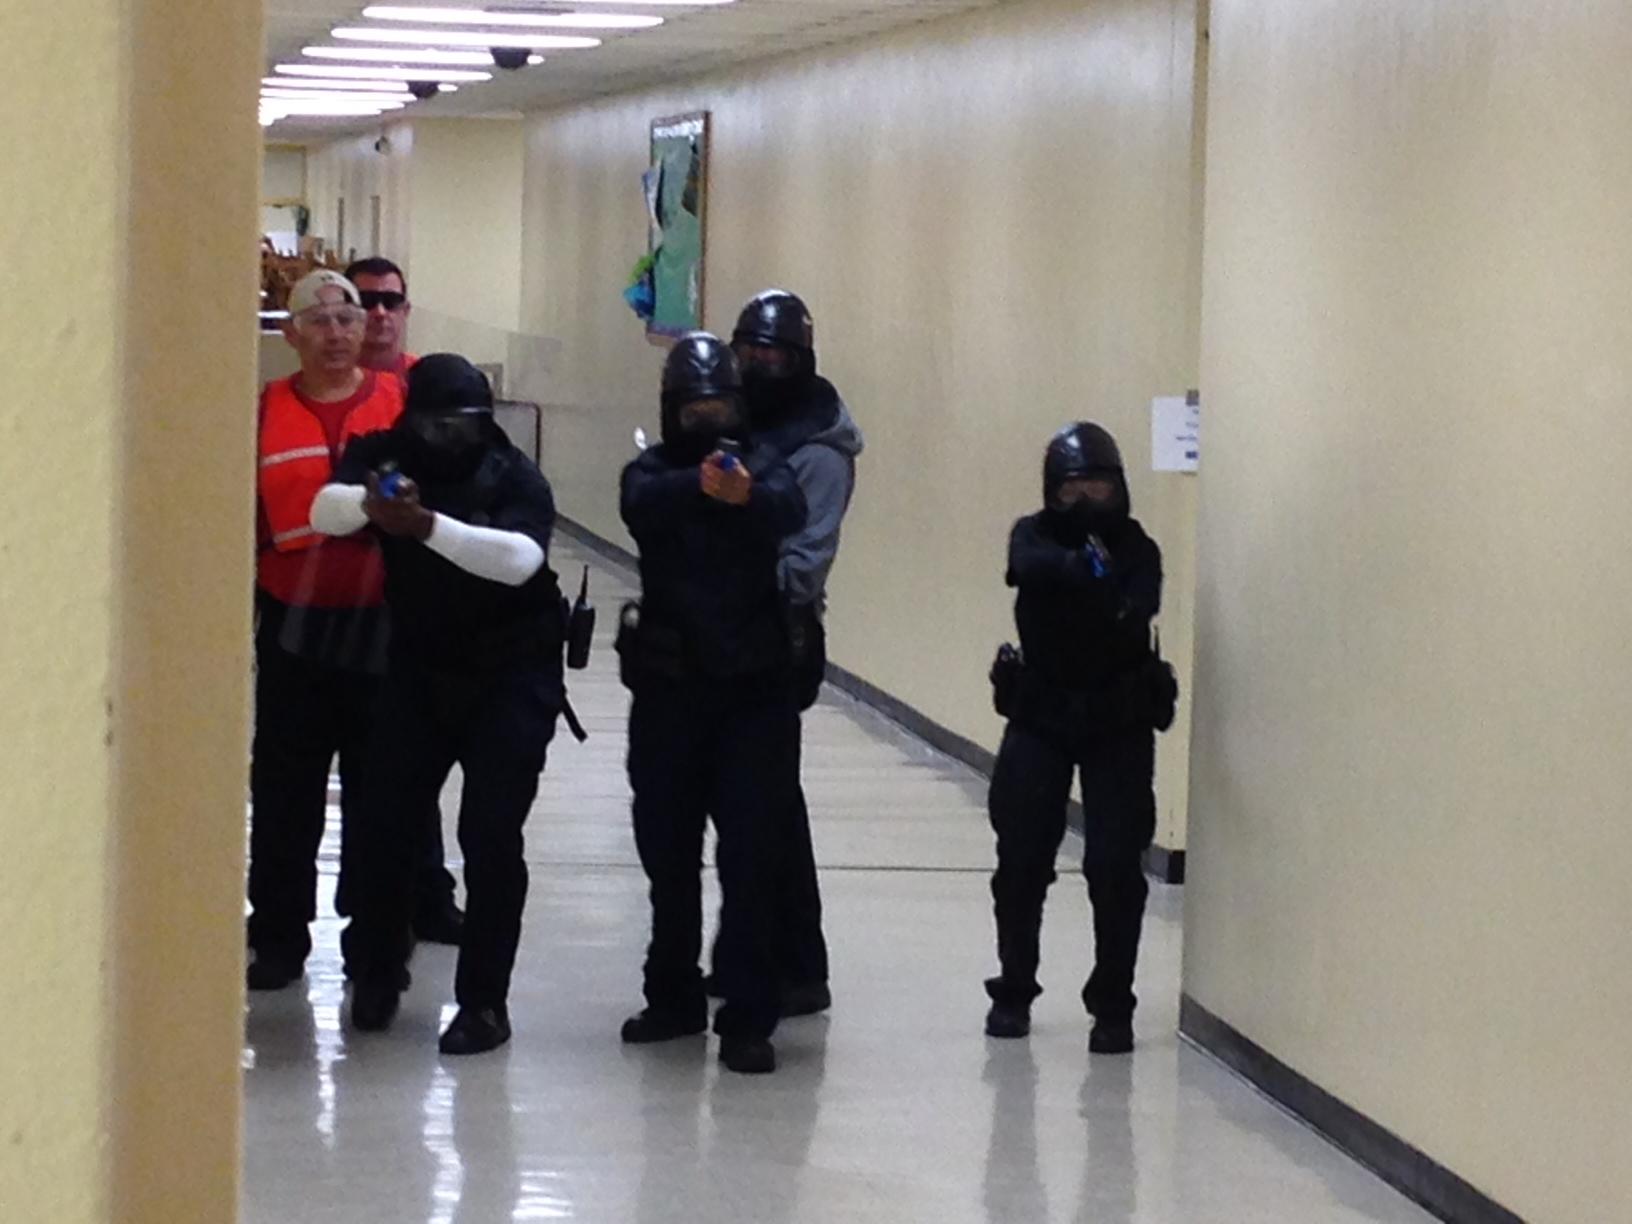 M-DSPD Officers Complete Active Shooter and Terrorist Training